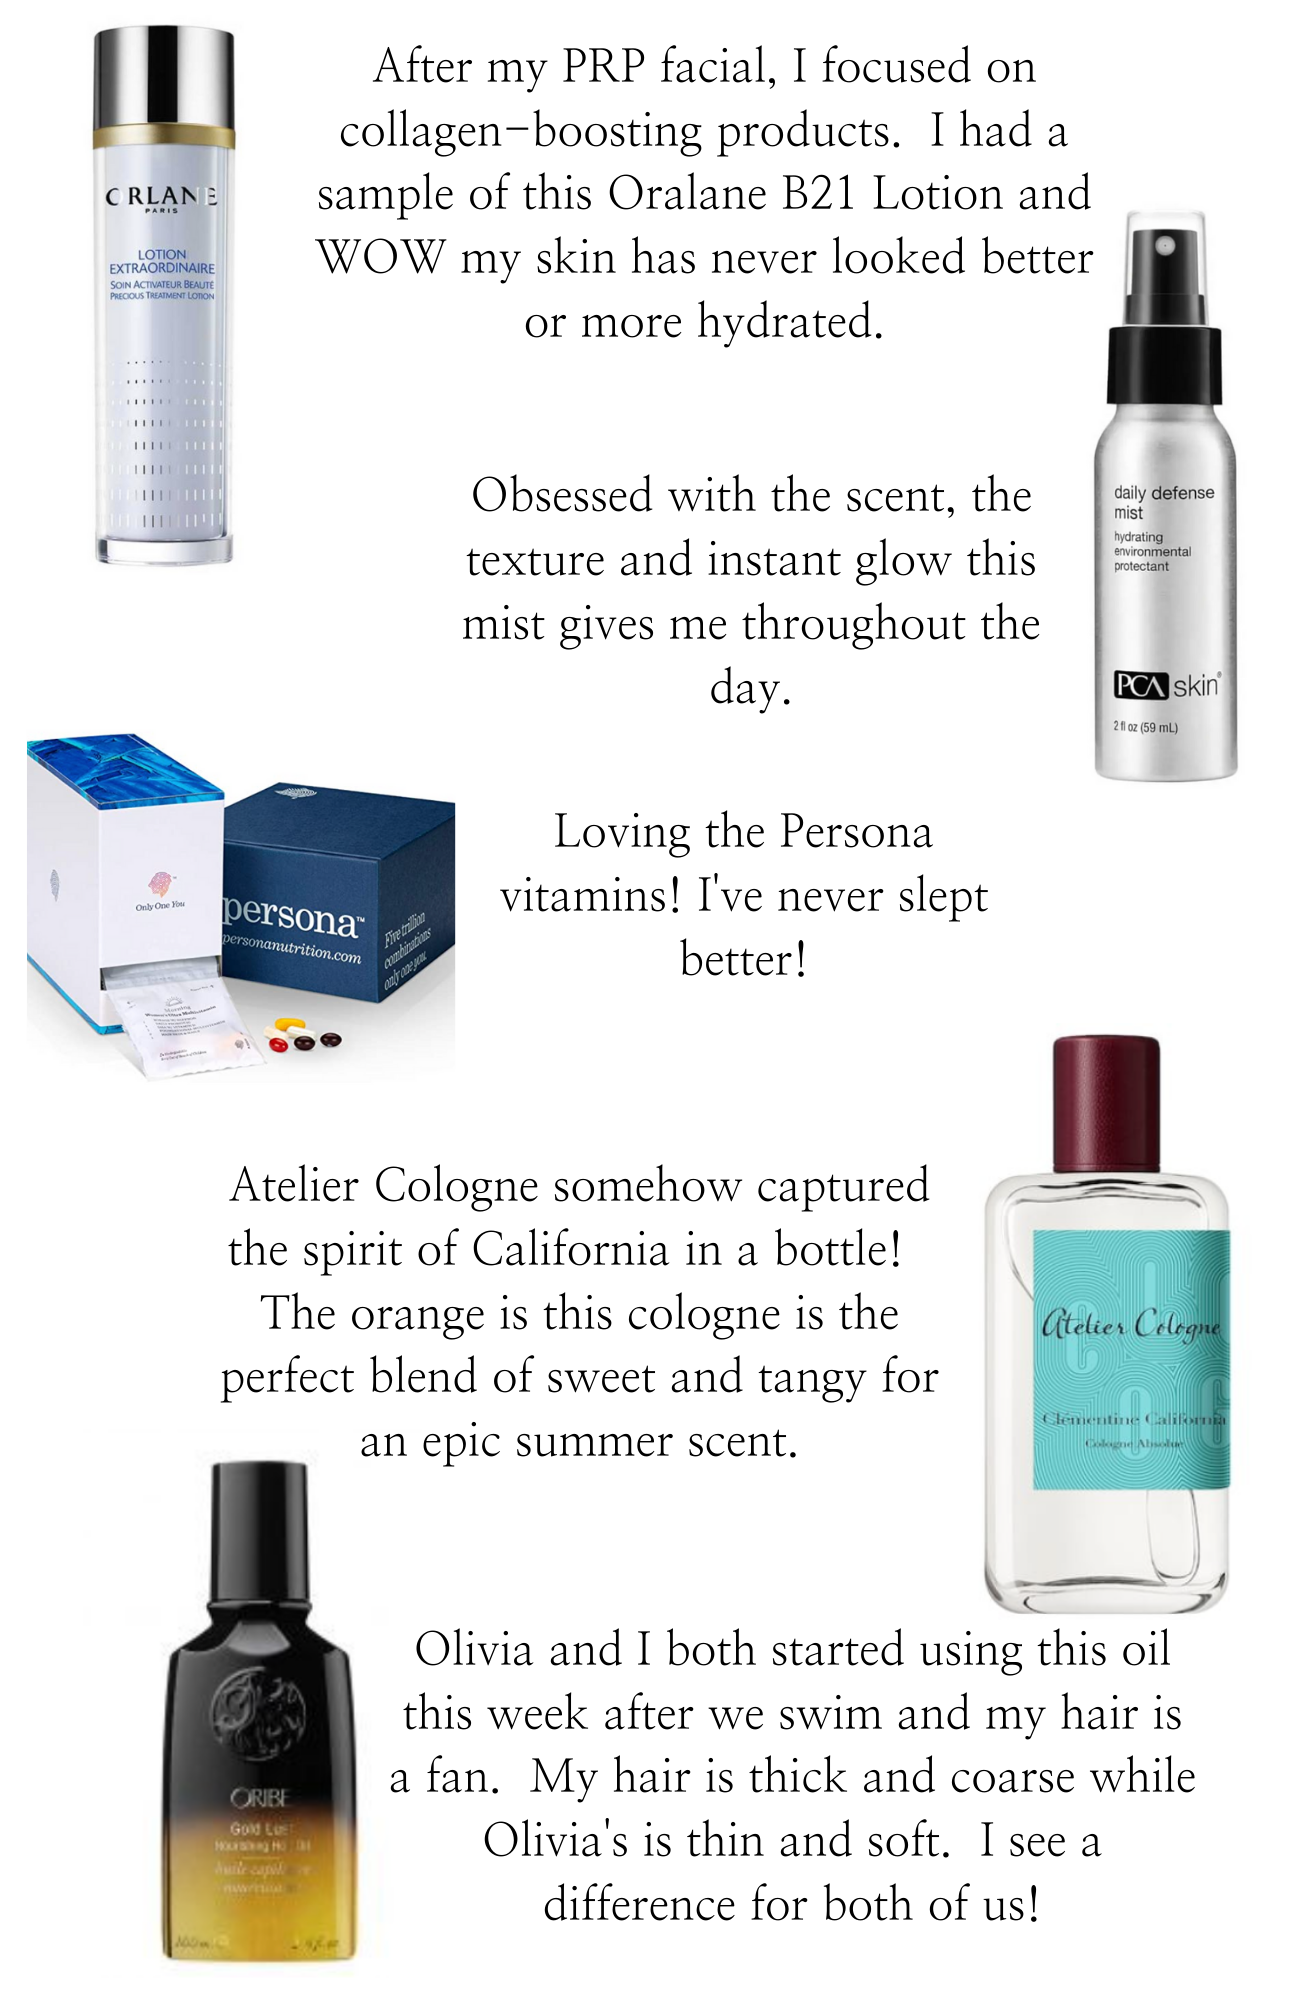 Best of Beauty by popular Monterey beauty blog, Haute Beauty Guide: collage image of Persona persona nutrition, PCA Skin, Atelier Cologne, Oribe oil, and Orlane lotion.